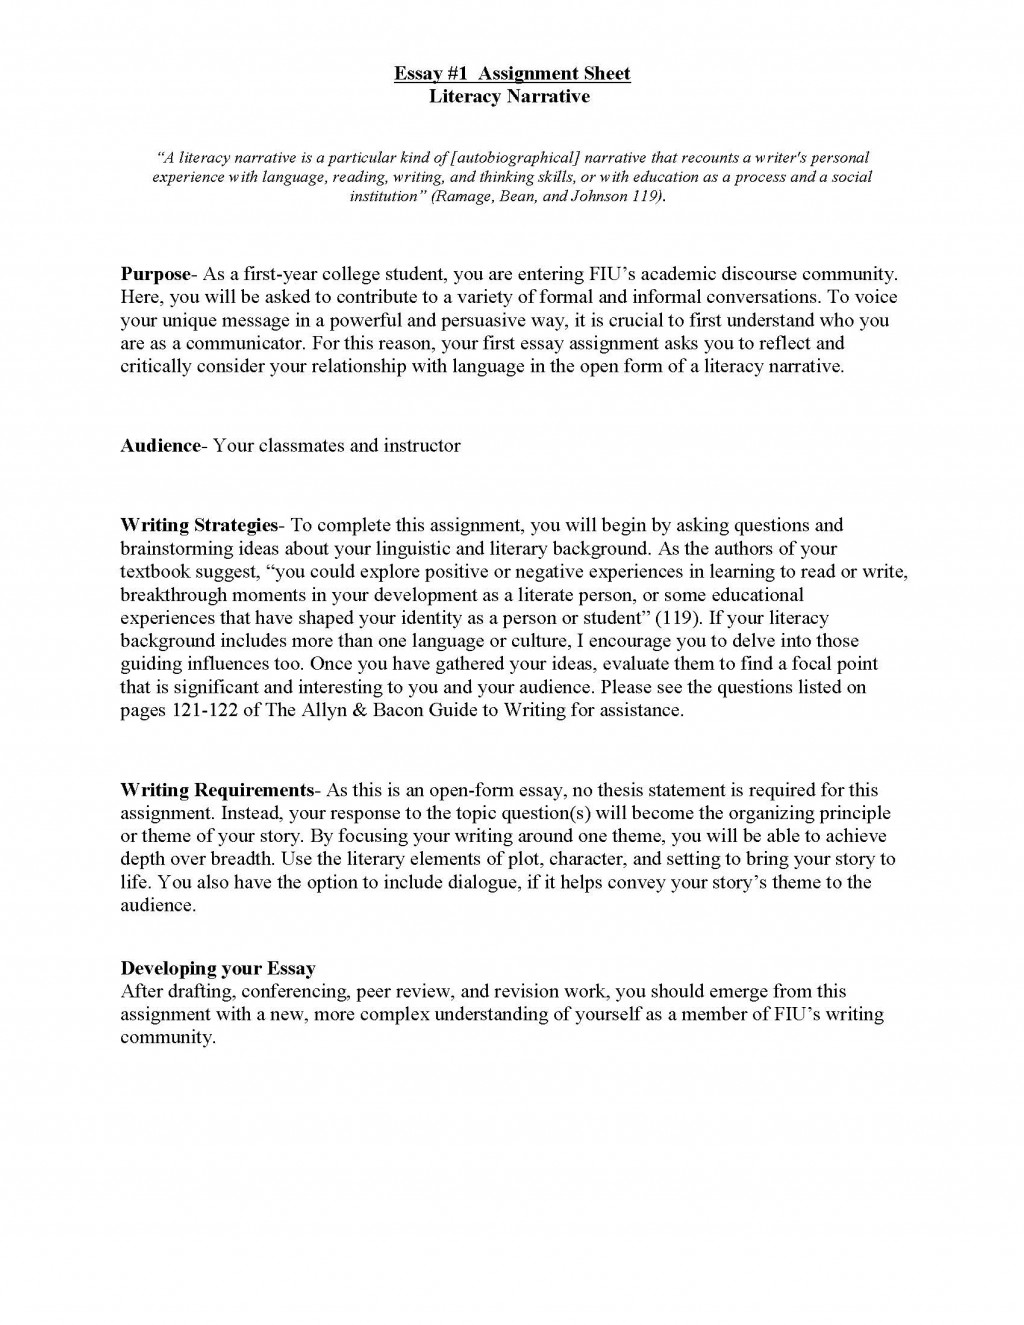 020 Narrative Essay Sample Example Literacy Unit Assignment Spring 2012 Page 1 Dreaded Questions Interesting Samples Spm Large